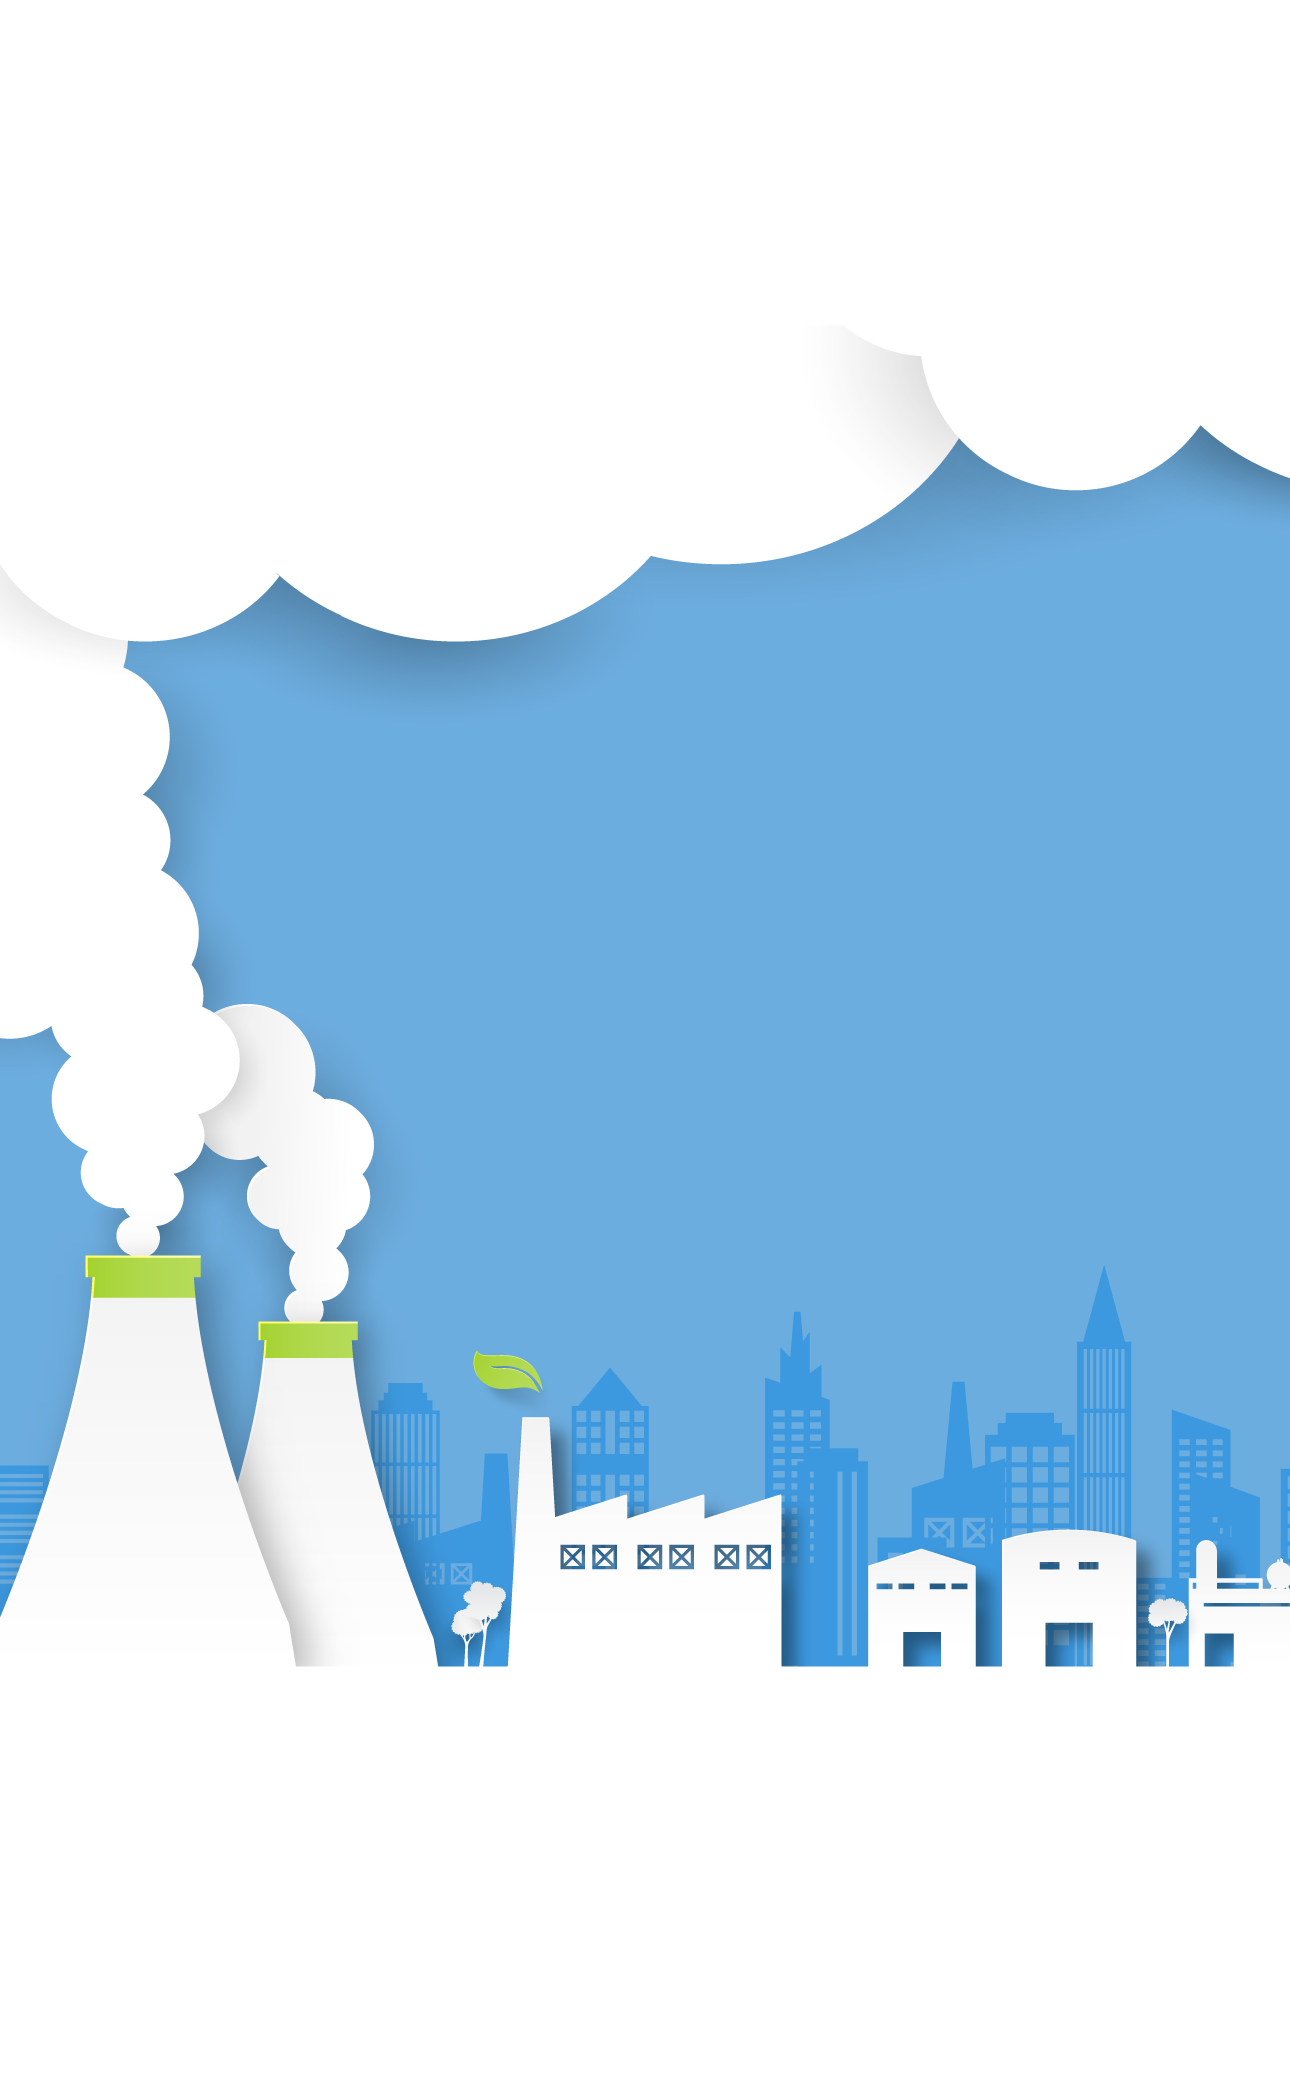 Background with clouds and factories